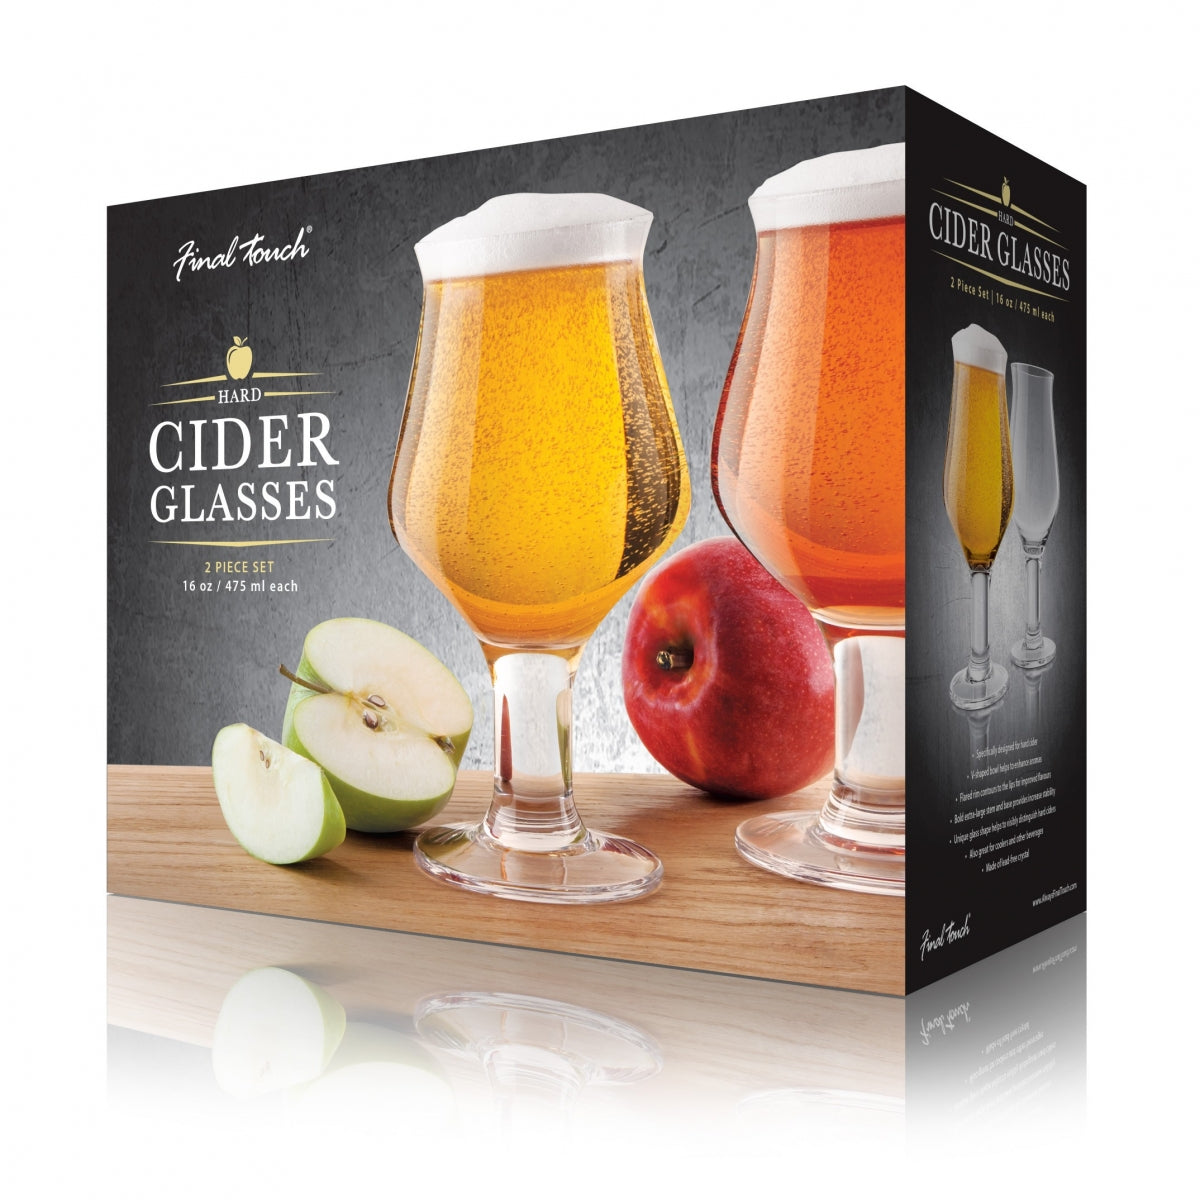 Hard Cider Glasses